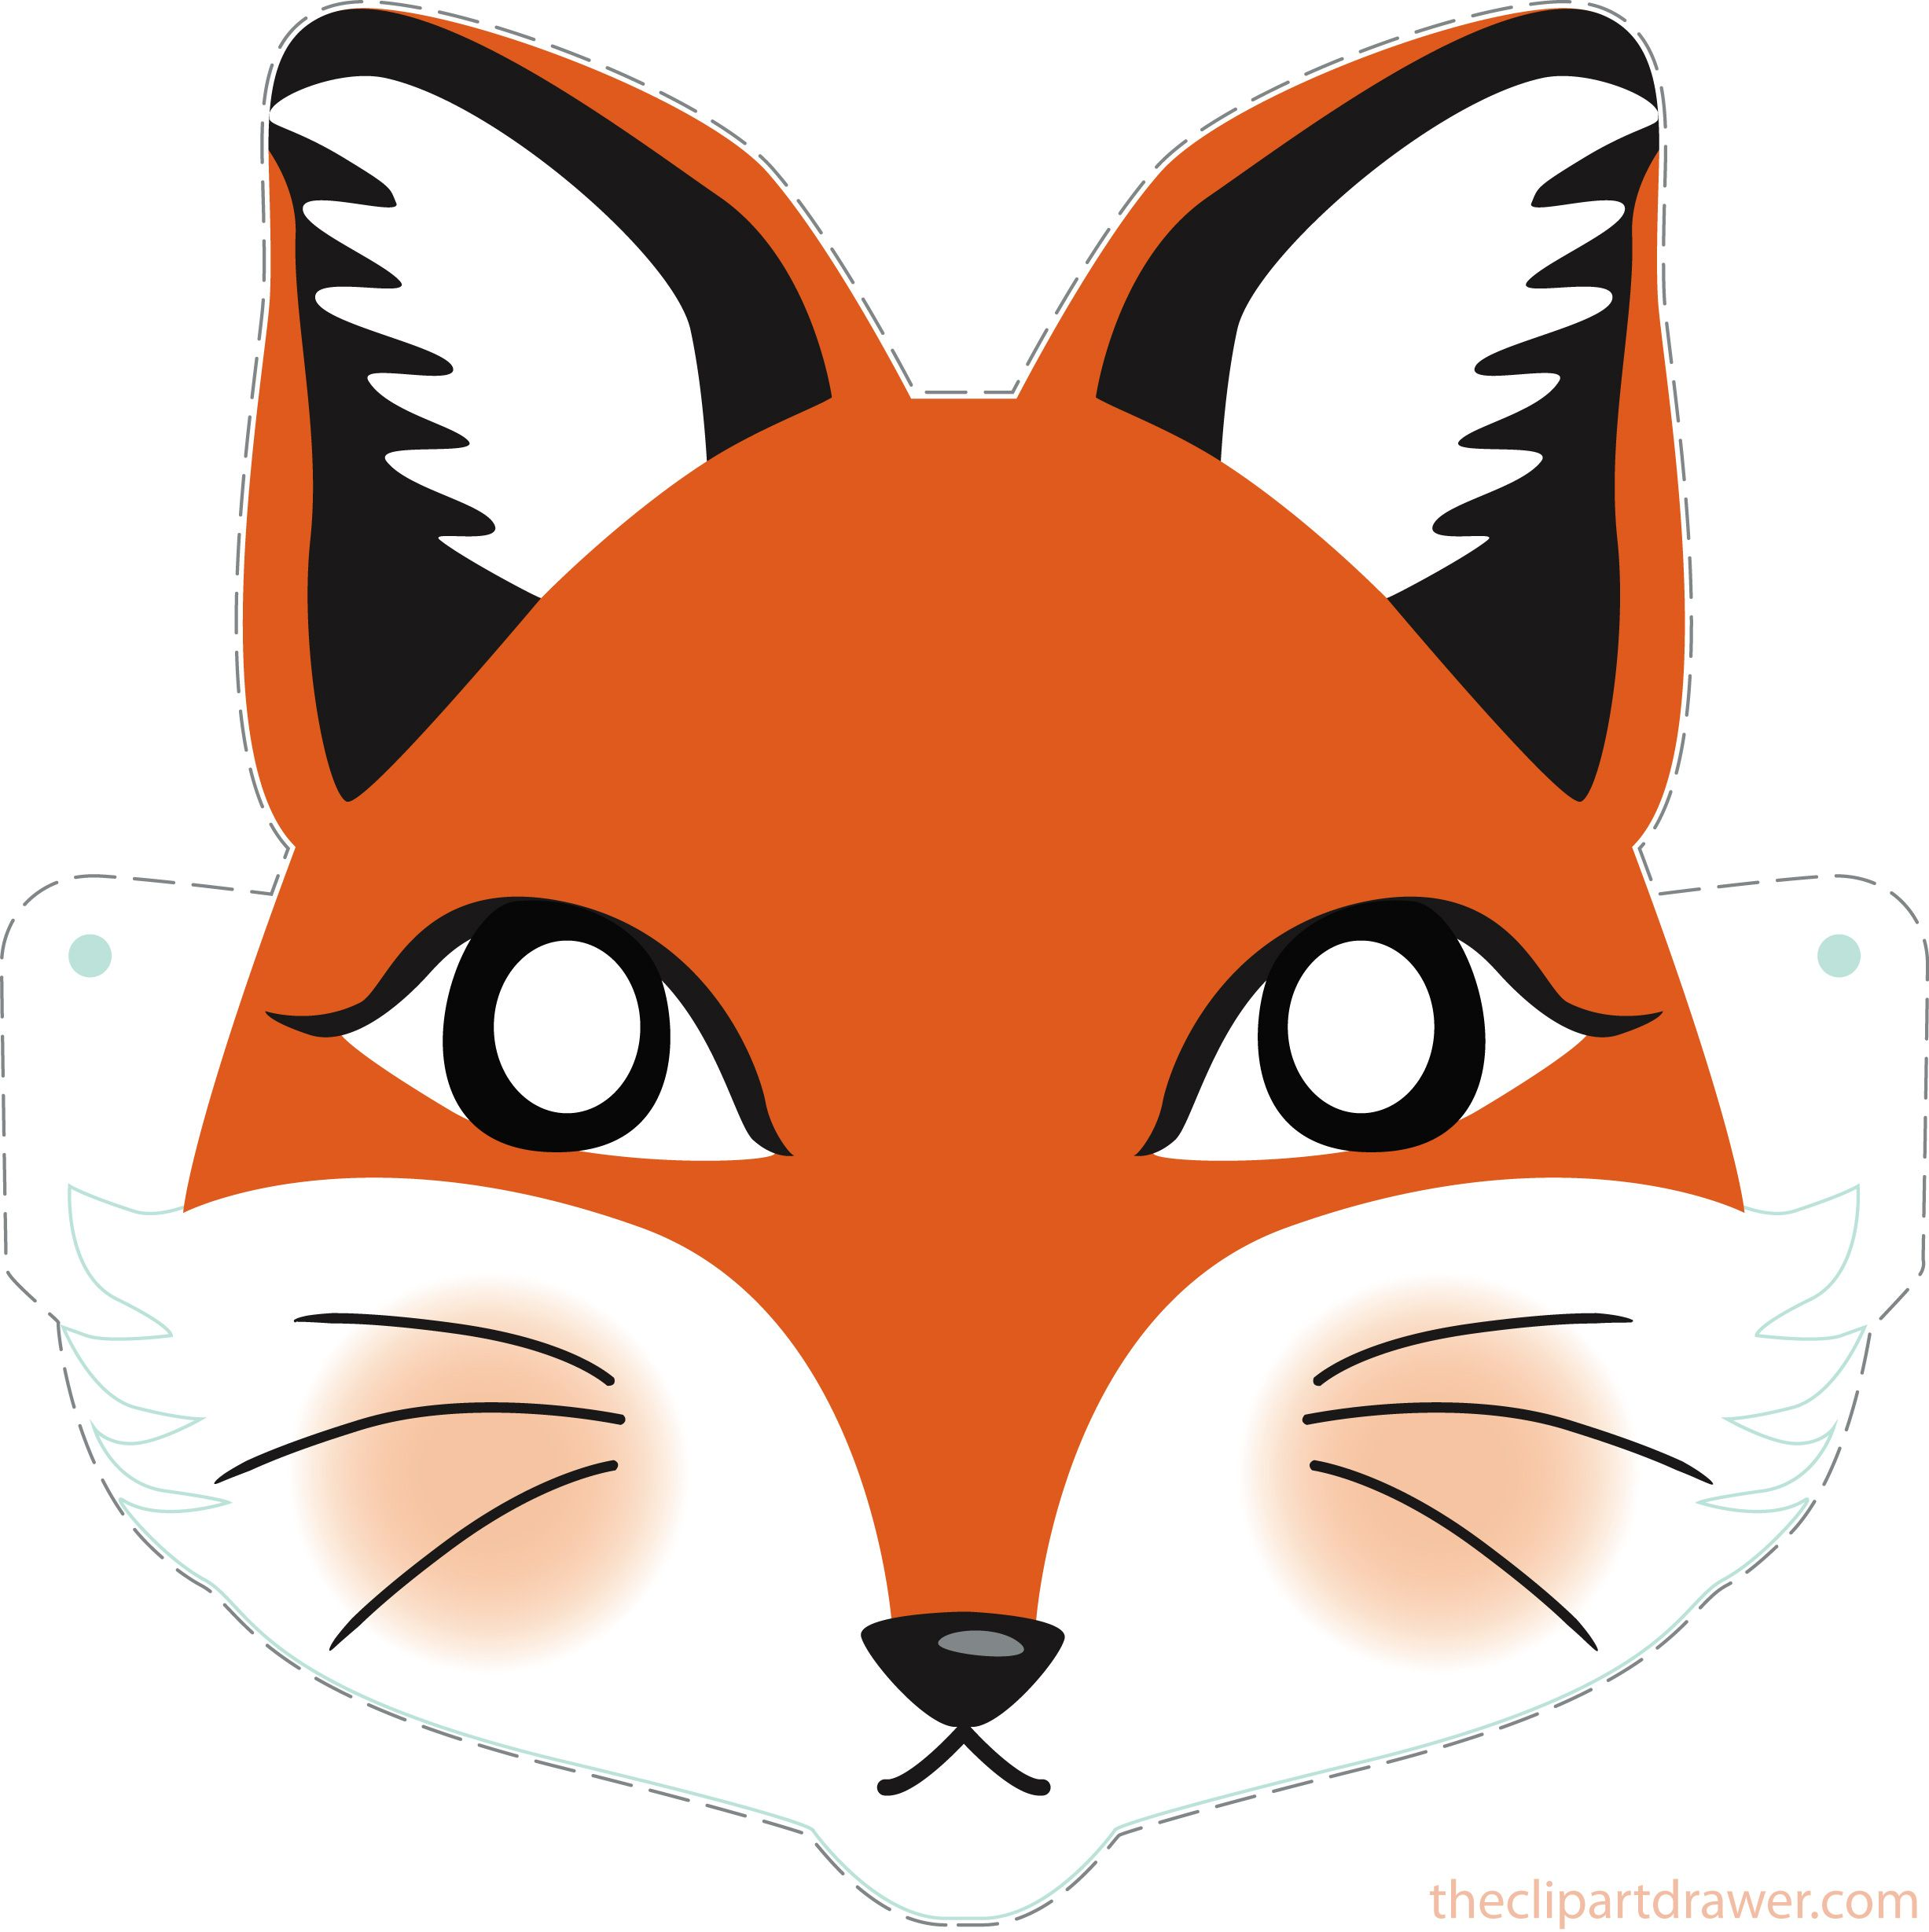 It's just an image of Playful Printable Fox Mask